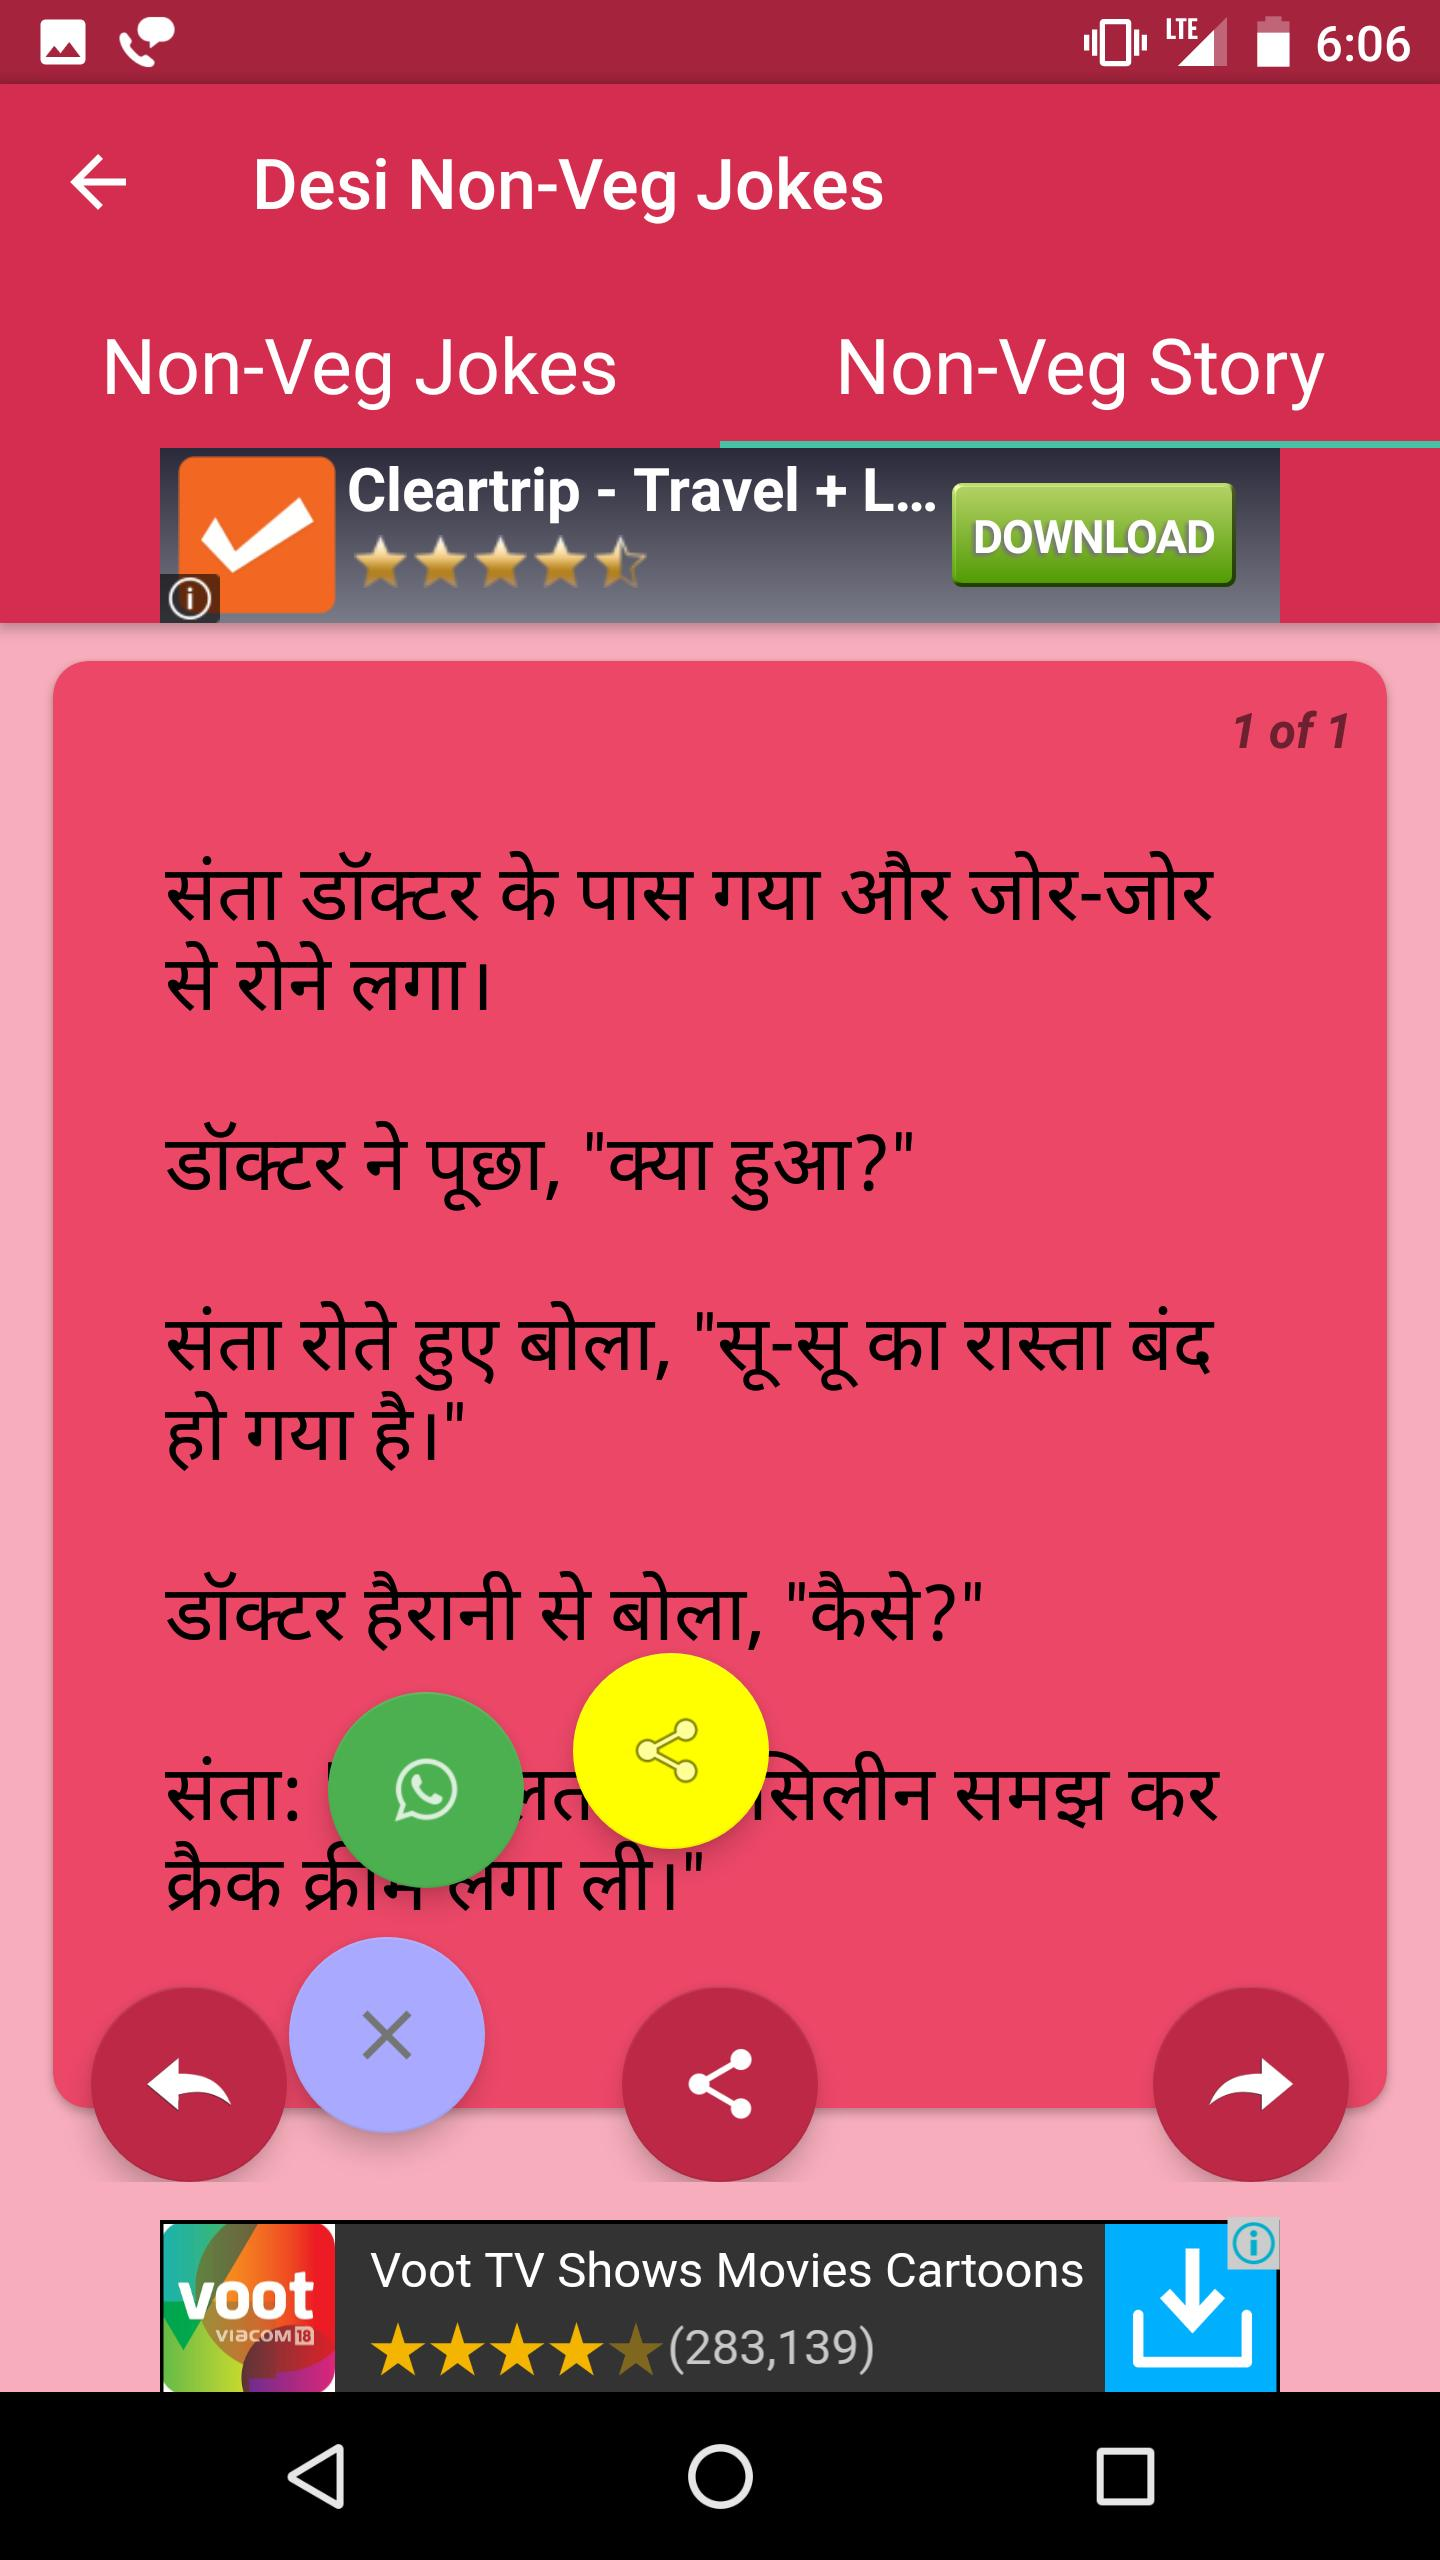 Desi Non Veg Jokes And Story For Android - Apk Download-6389